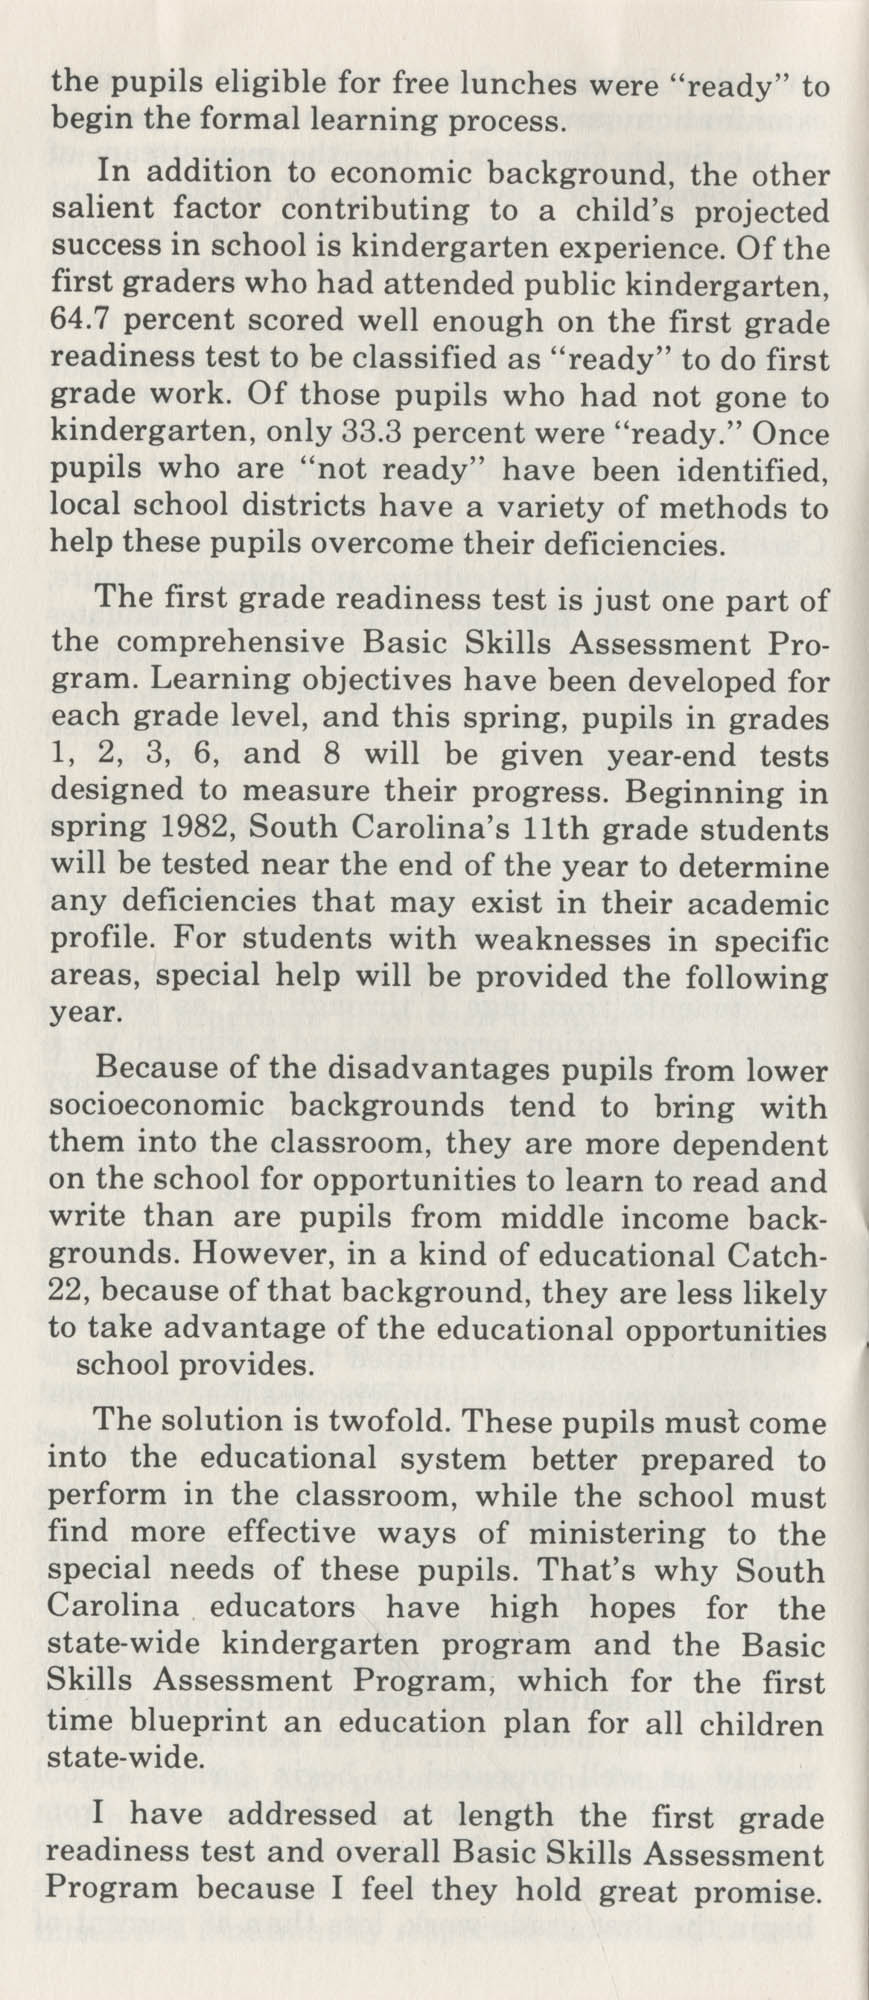 Education-Economy, Inseparable Forces in South Carolina's Past and Future, Page 7